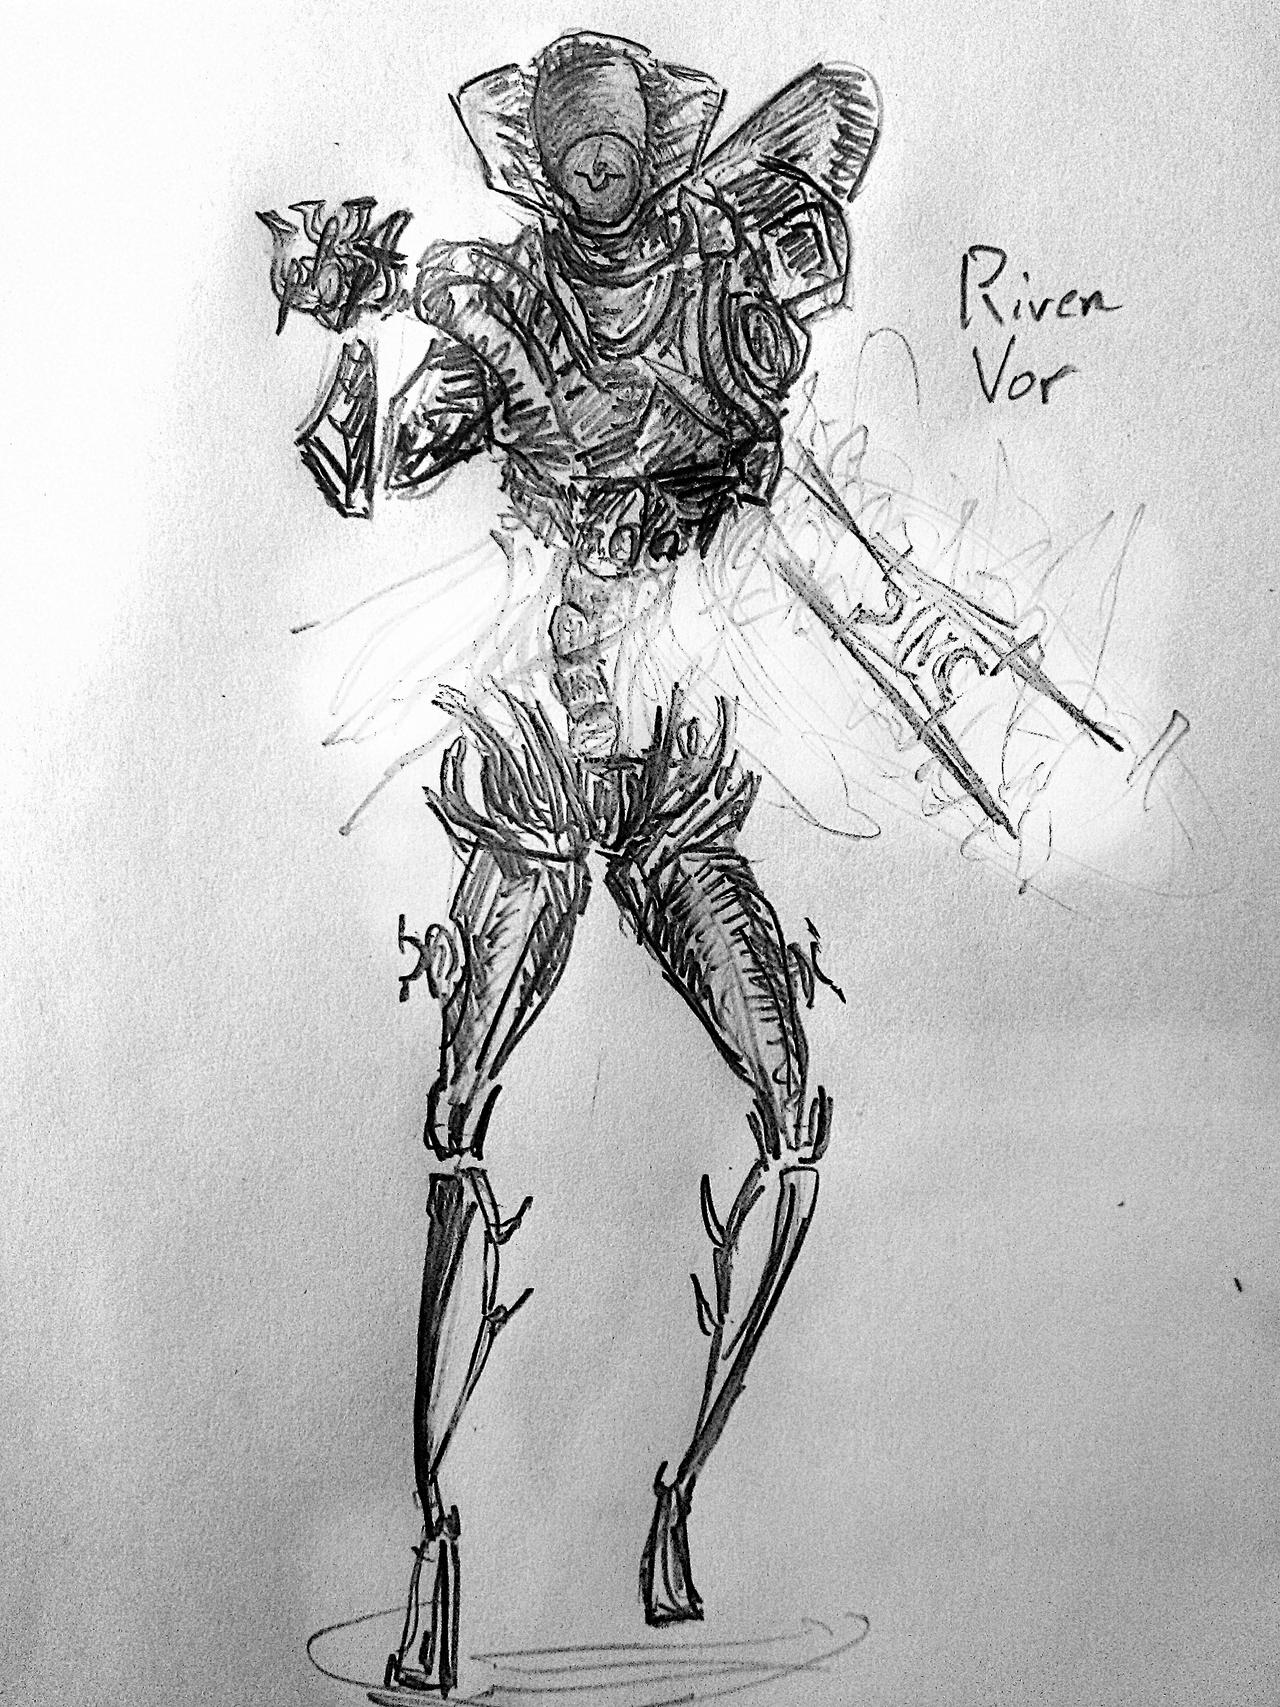 riven_vor_by_huginthecrowda_dd4kspz-full